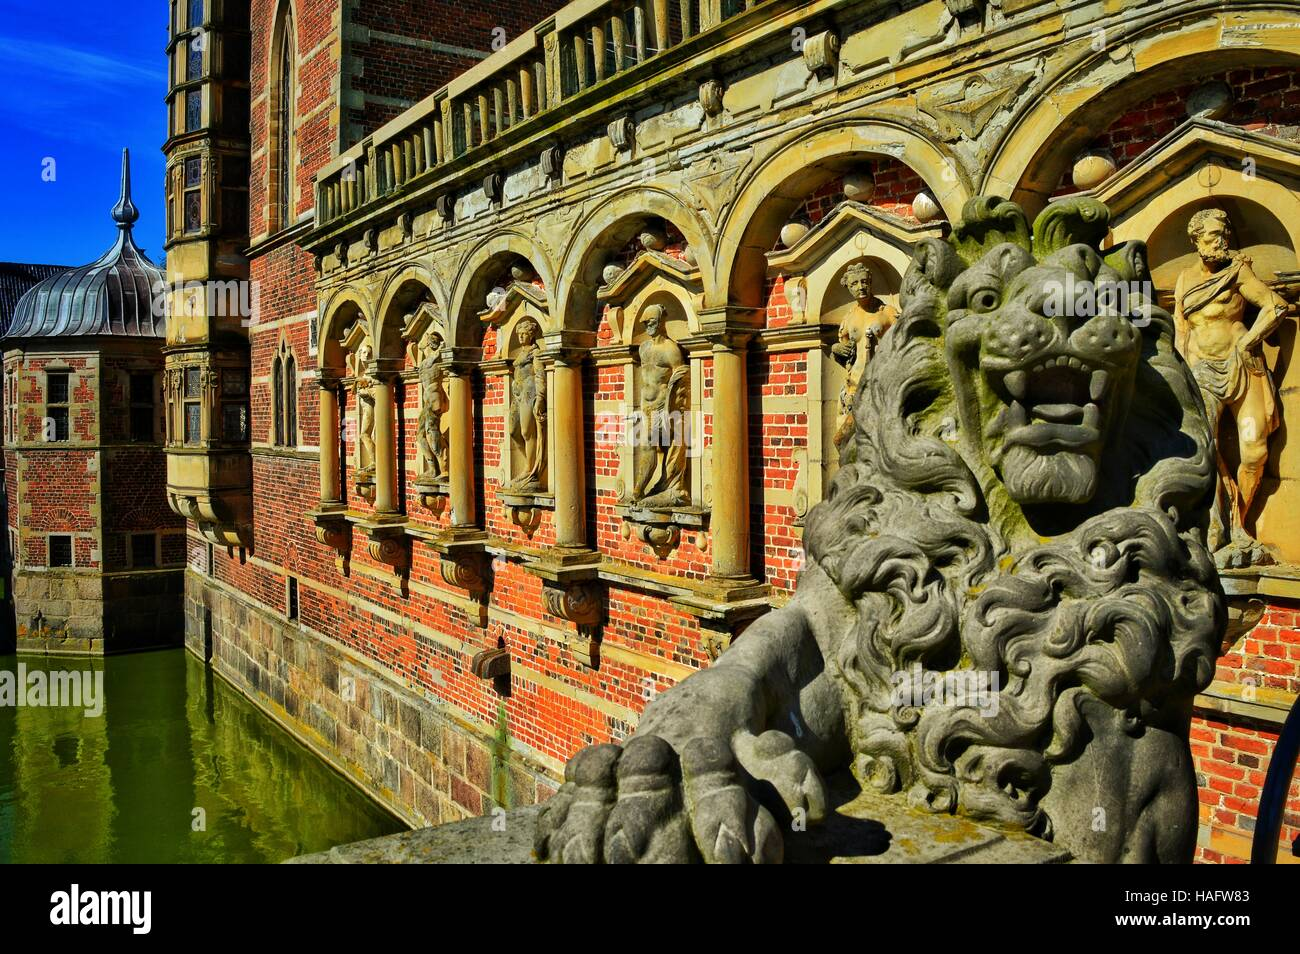 Entrance to Frederiksborg Castle, Hillerod, Denmark - Stock Image